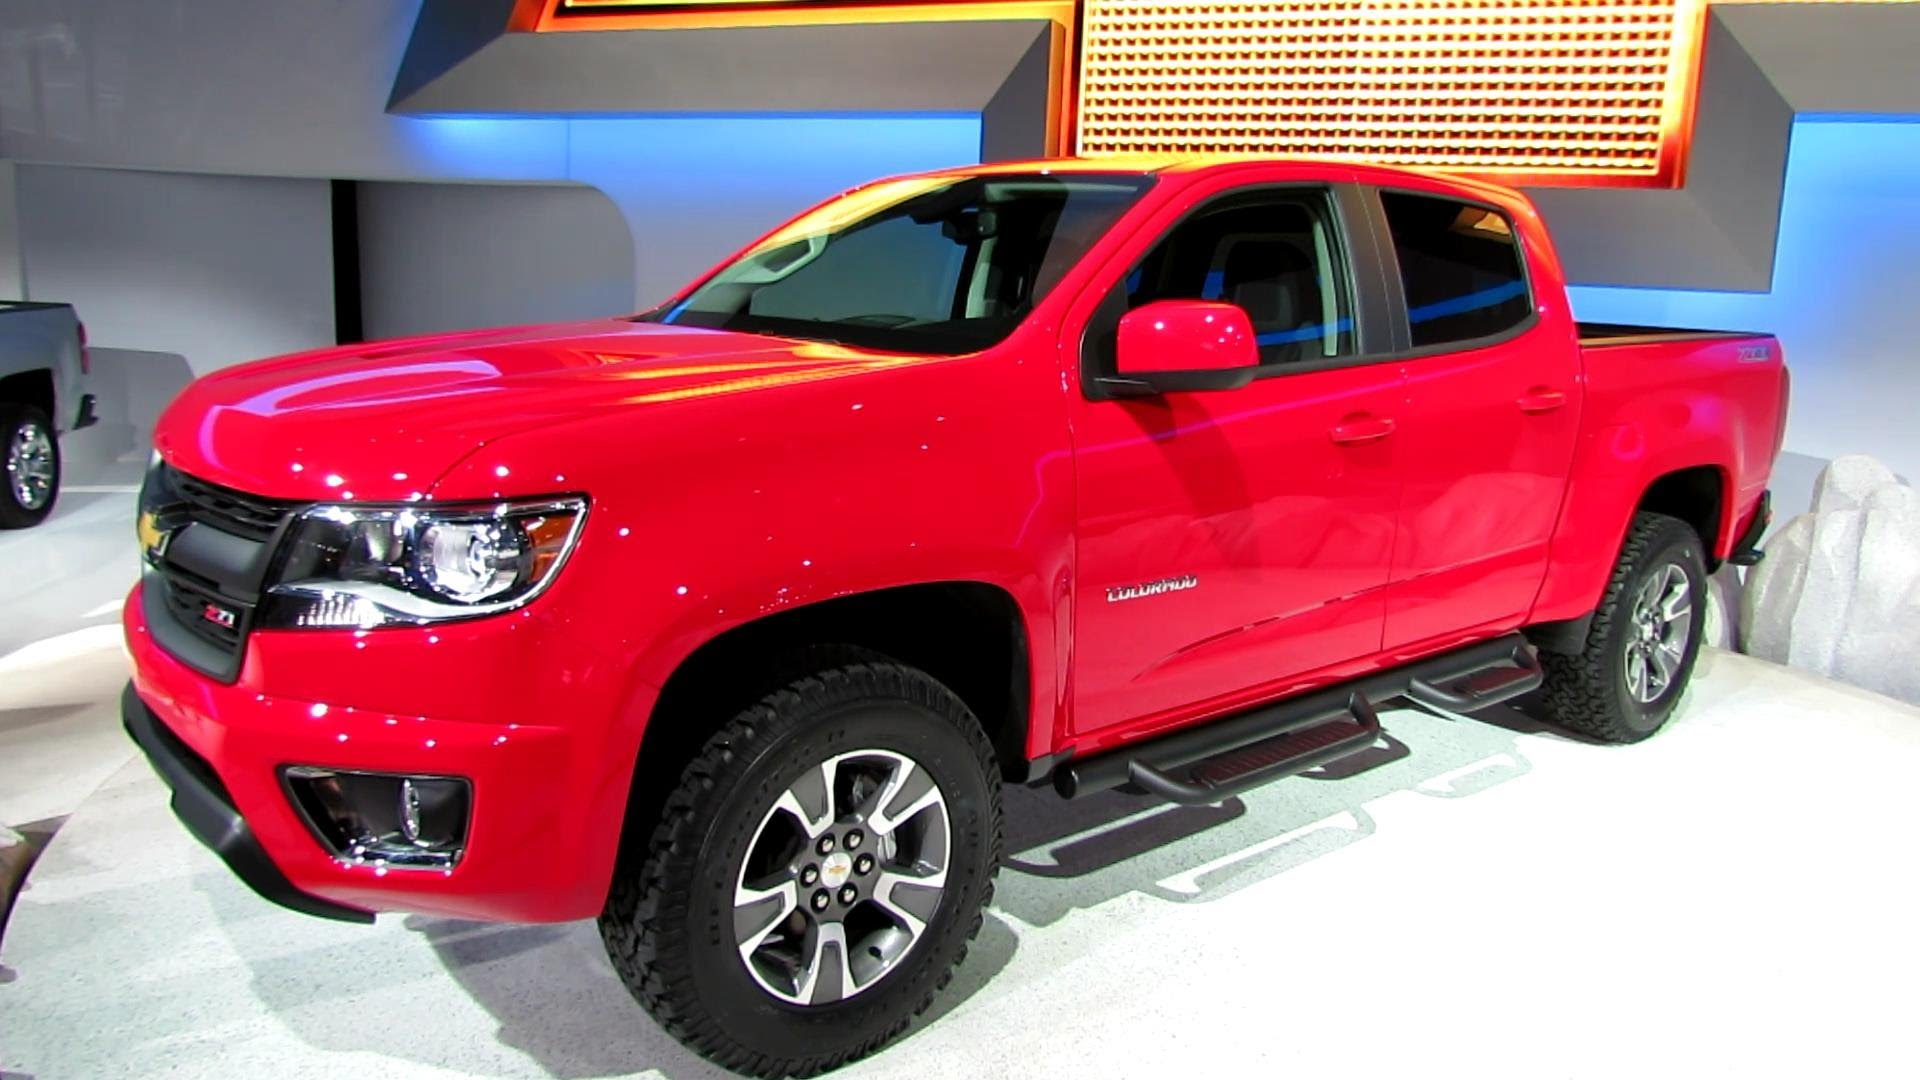 2015 chevy colorado hd photo wallpaper wallpaper setup